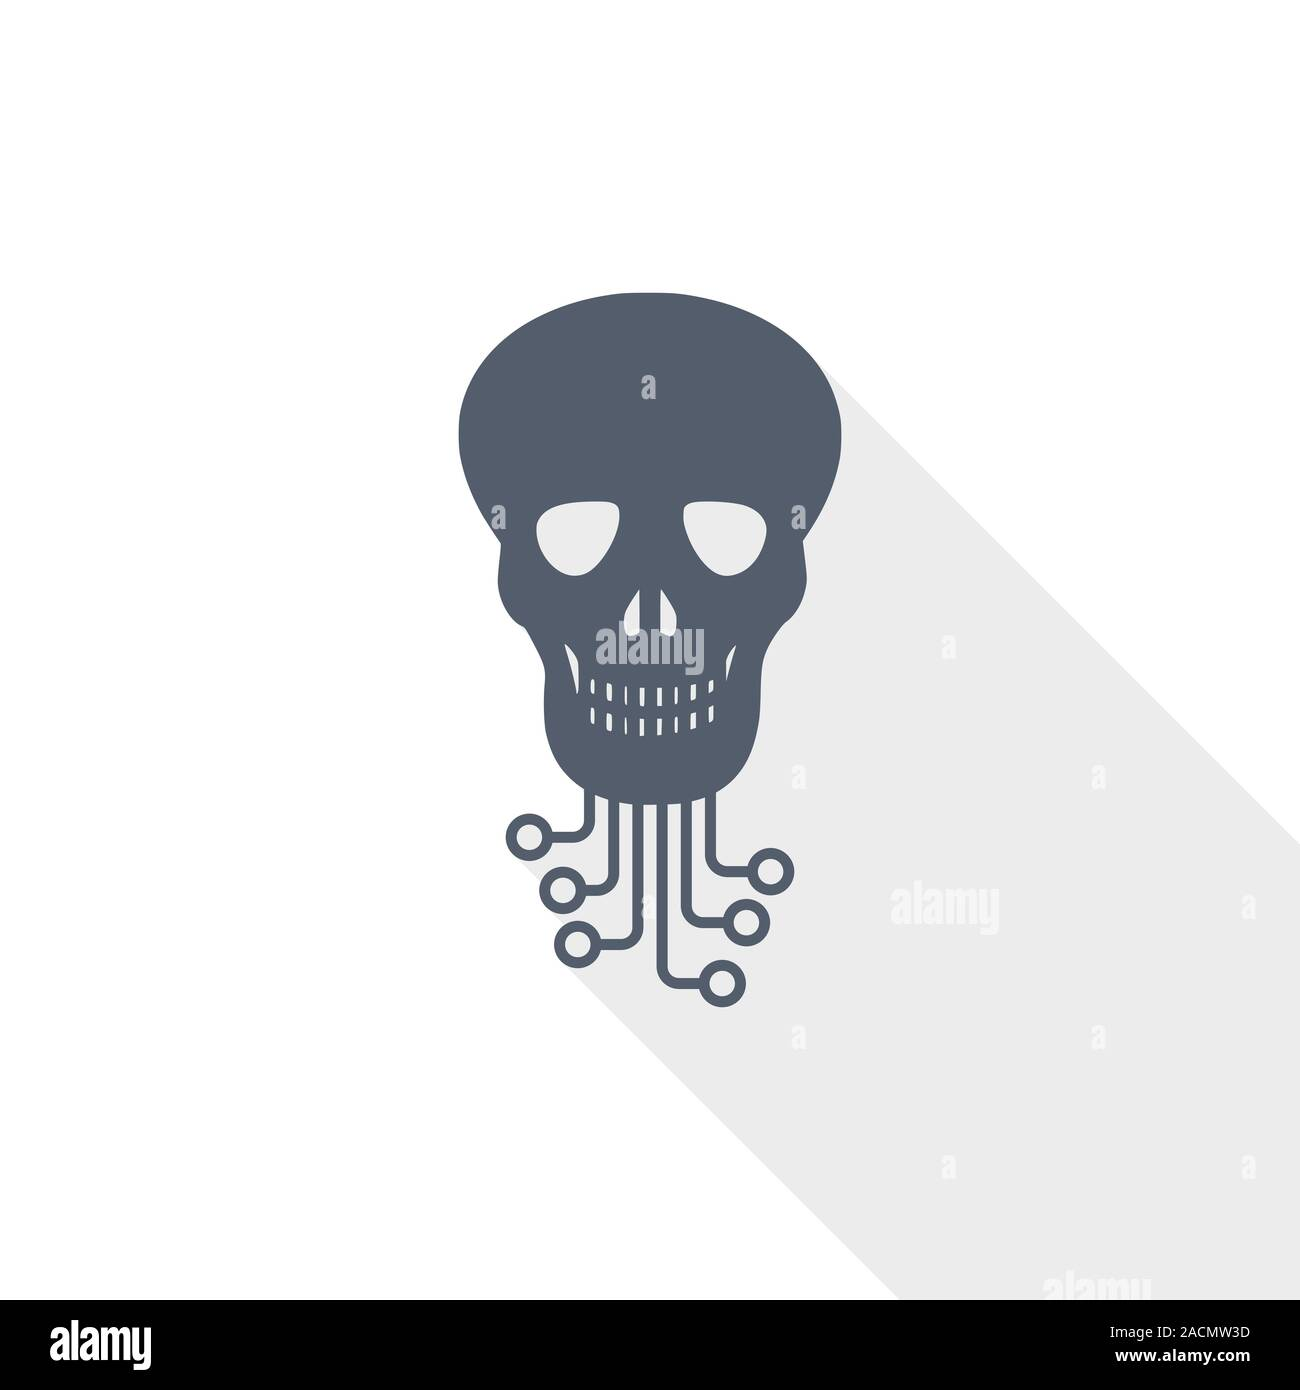 hack vector vectors high resolution stock photography and images alamy https www alamy com hack vector icon virus circuit skull hacker concept flat design illustration in eps 10 with empty copy space image334831601 html